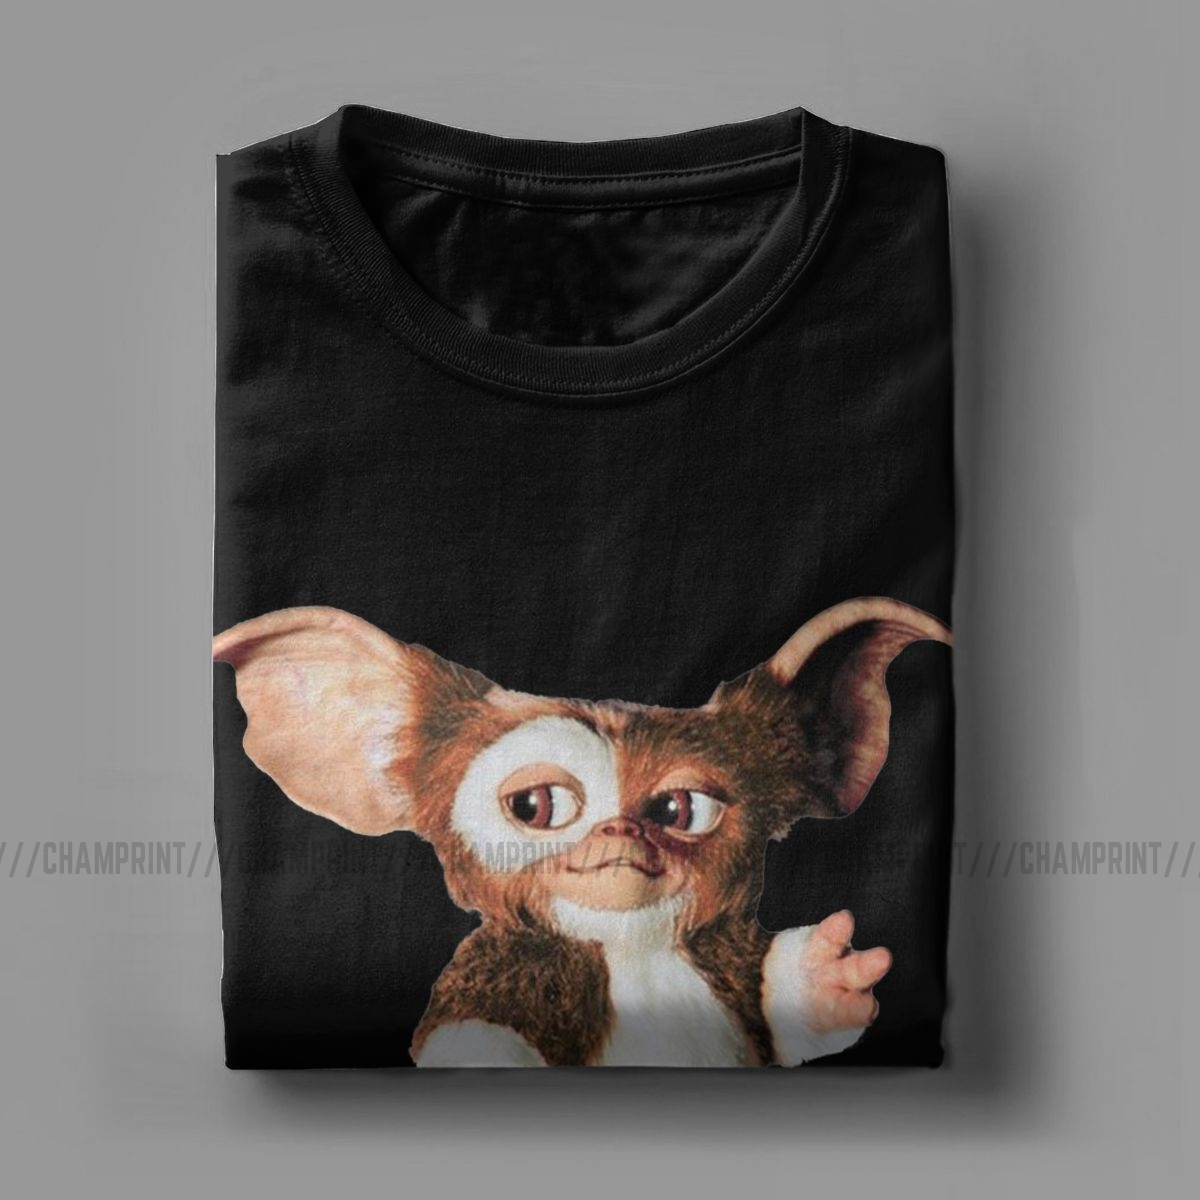 Men's T-Shirt Gremlins Gizmo Cotton Tee Shirt Short Sleeve Gizmo 80s Movie Mogwai Monster T Shirt Round Neck Tops Plus Size